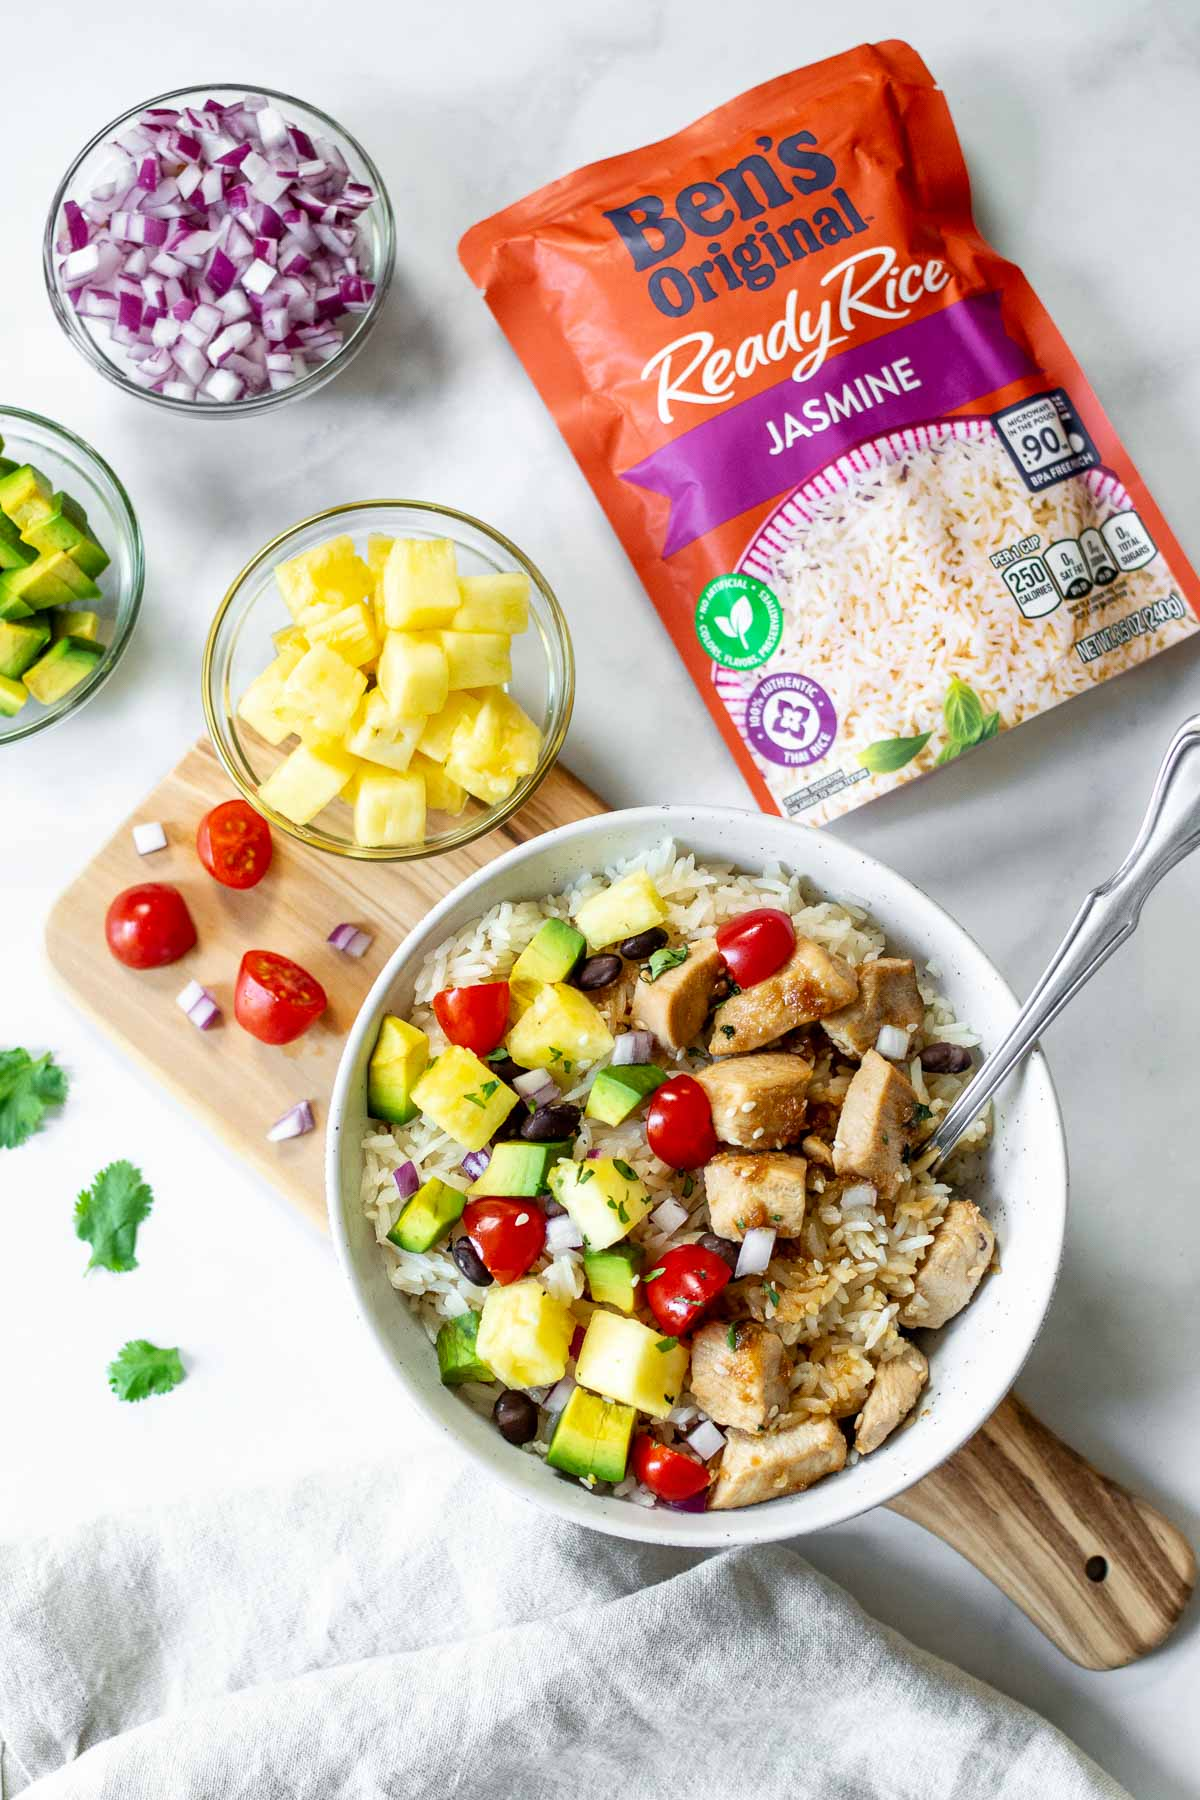 Assembled Hawaiian chicken bowl with pineapple, avocado and red onion in small bowls and a package of Ben's Original Jasmine rice